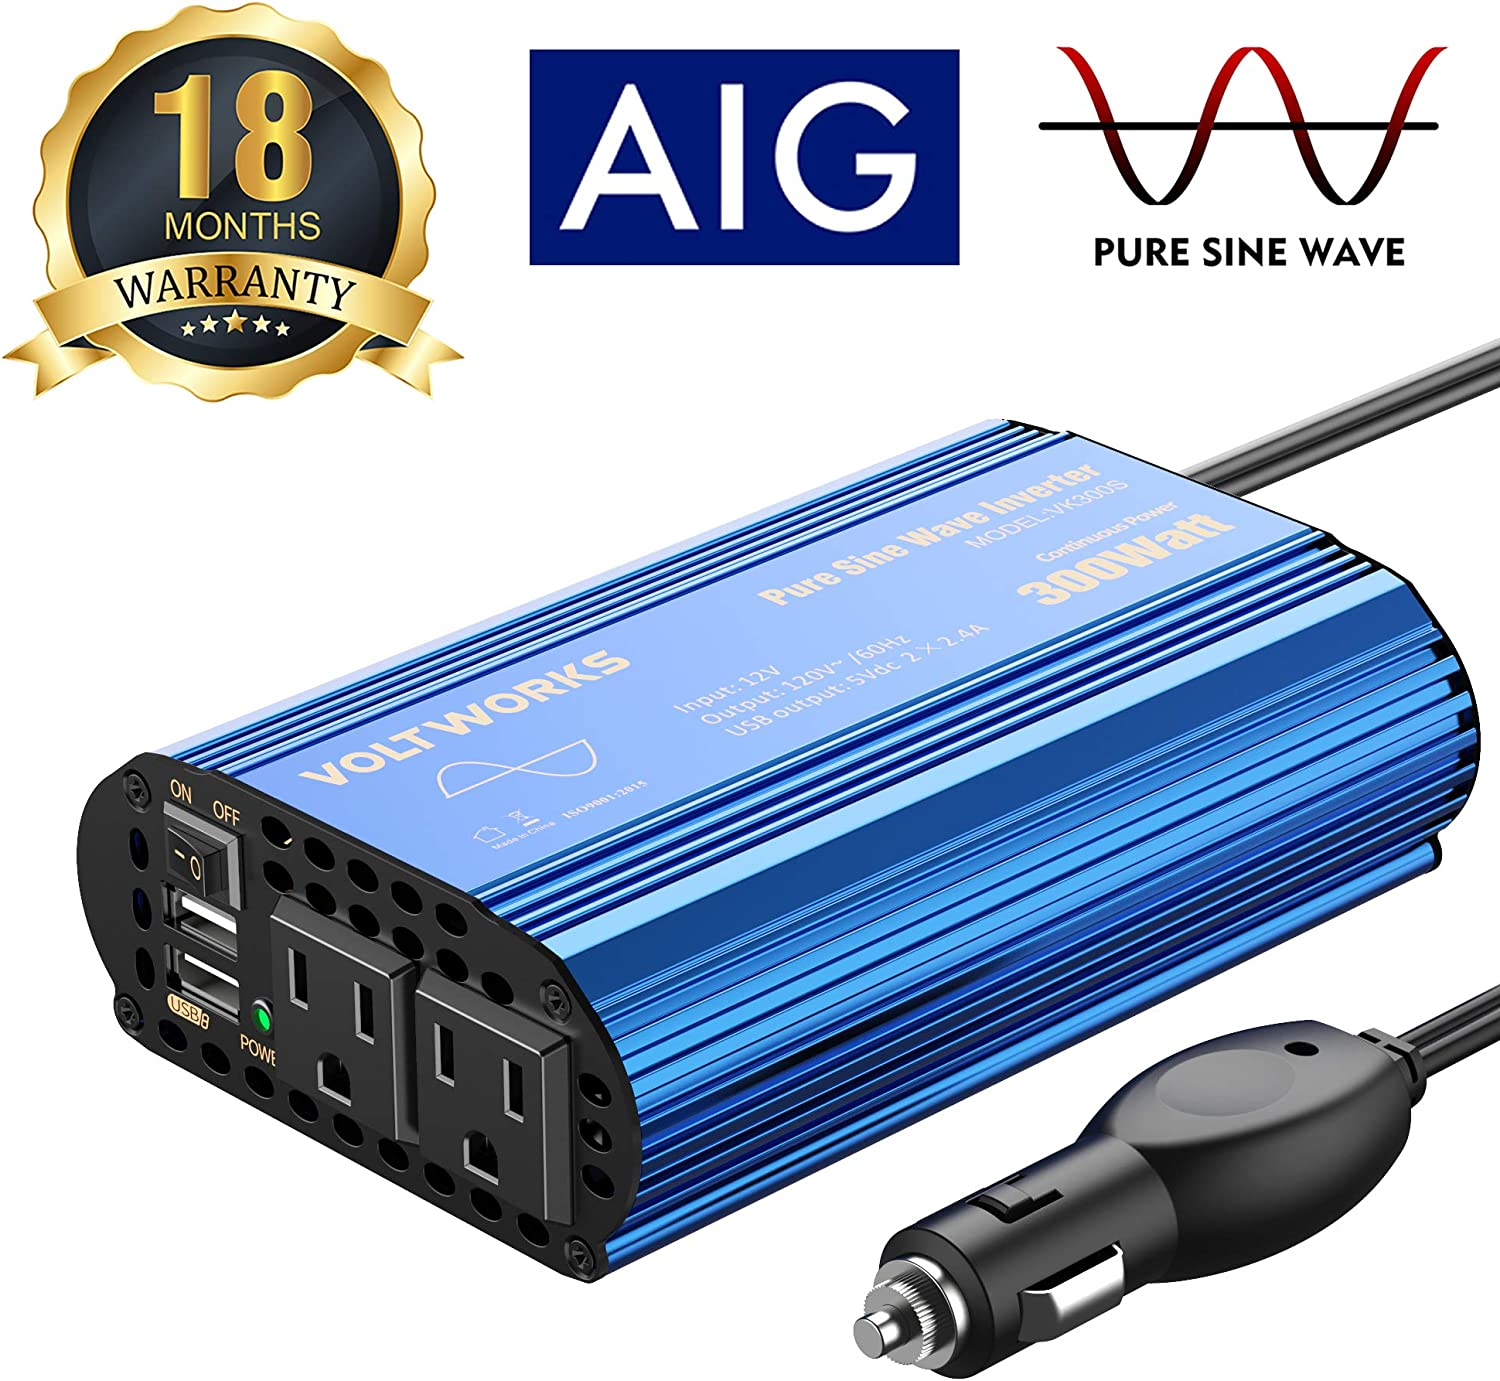 300W Pure Sine Wave Power Inverter for Car Truck RV Adapter DC 12V to AC 110V 120V with Dual 4.8A USB Port & AC Outlets by VOLTWORKS